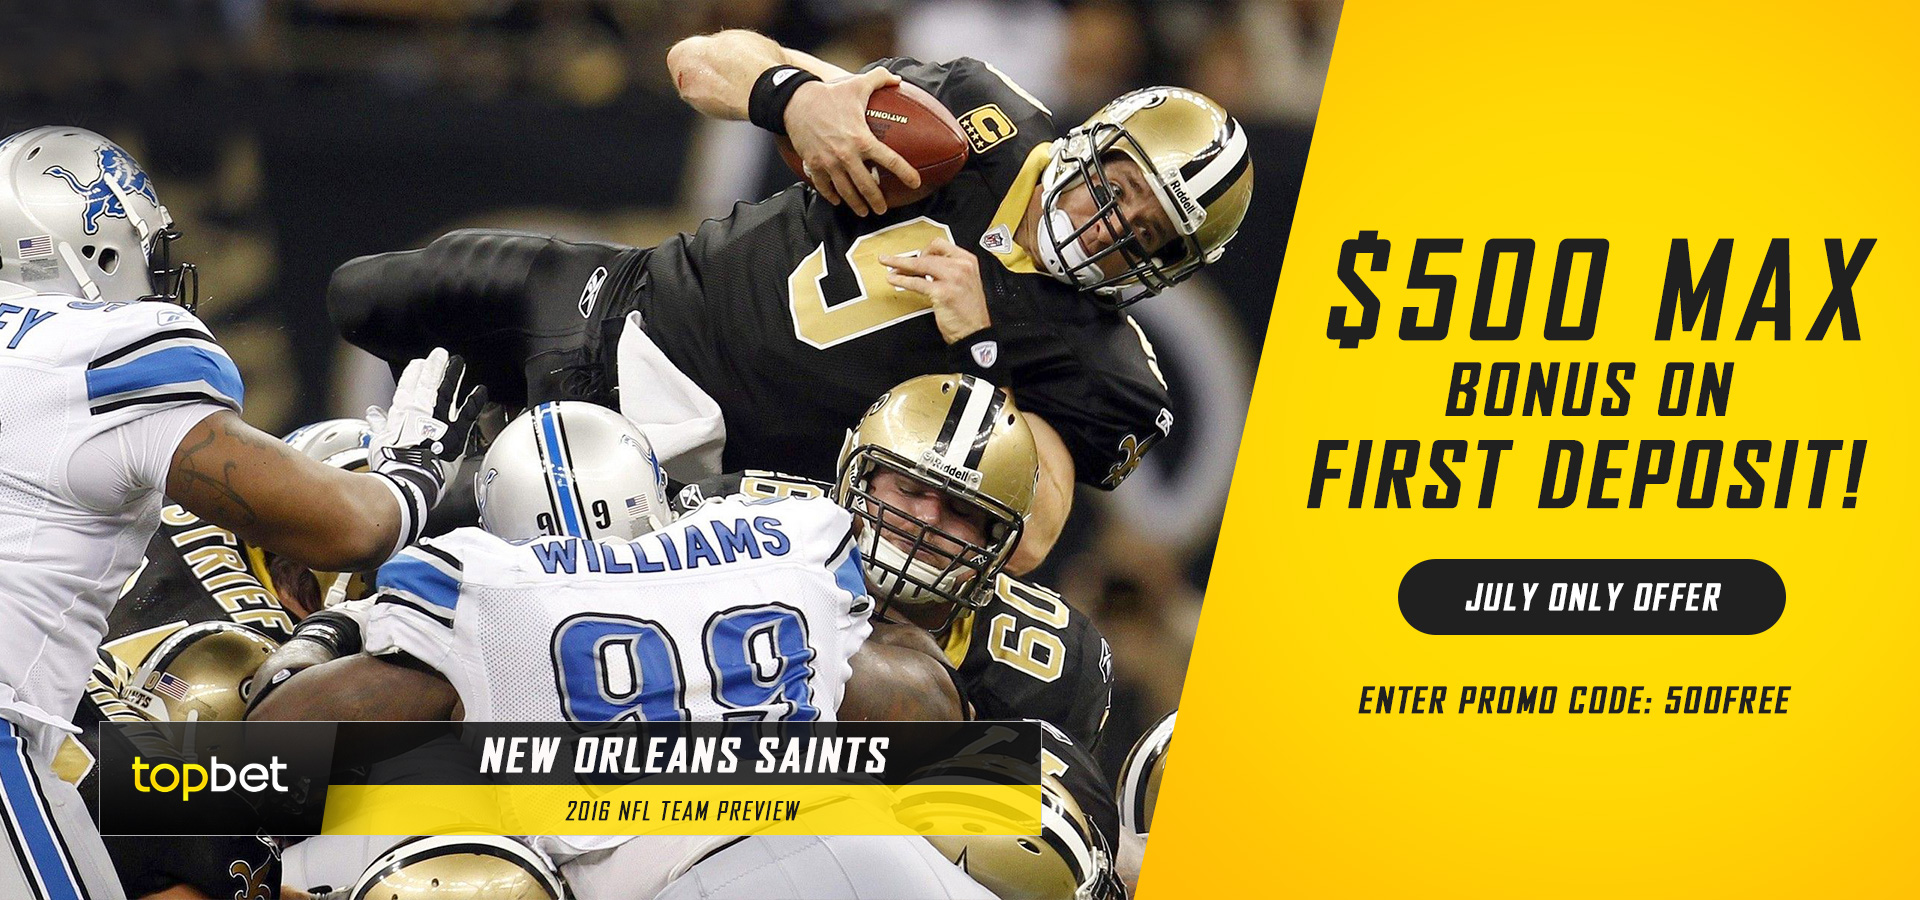 nfl sports betting cash america new orleans